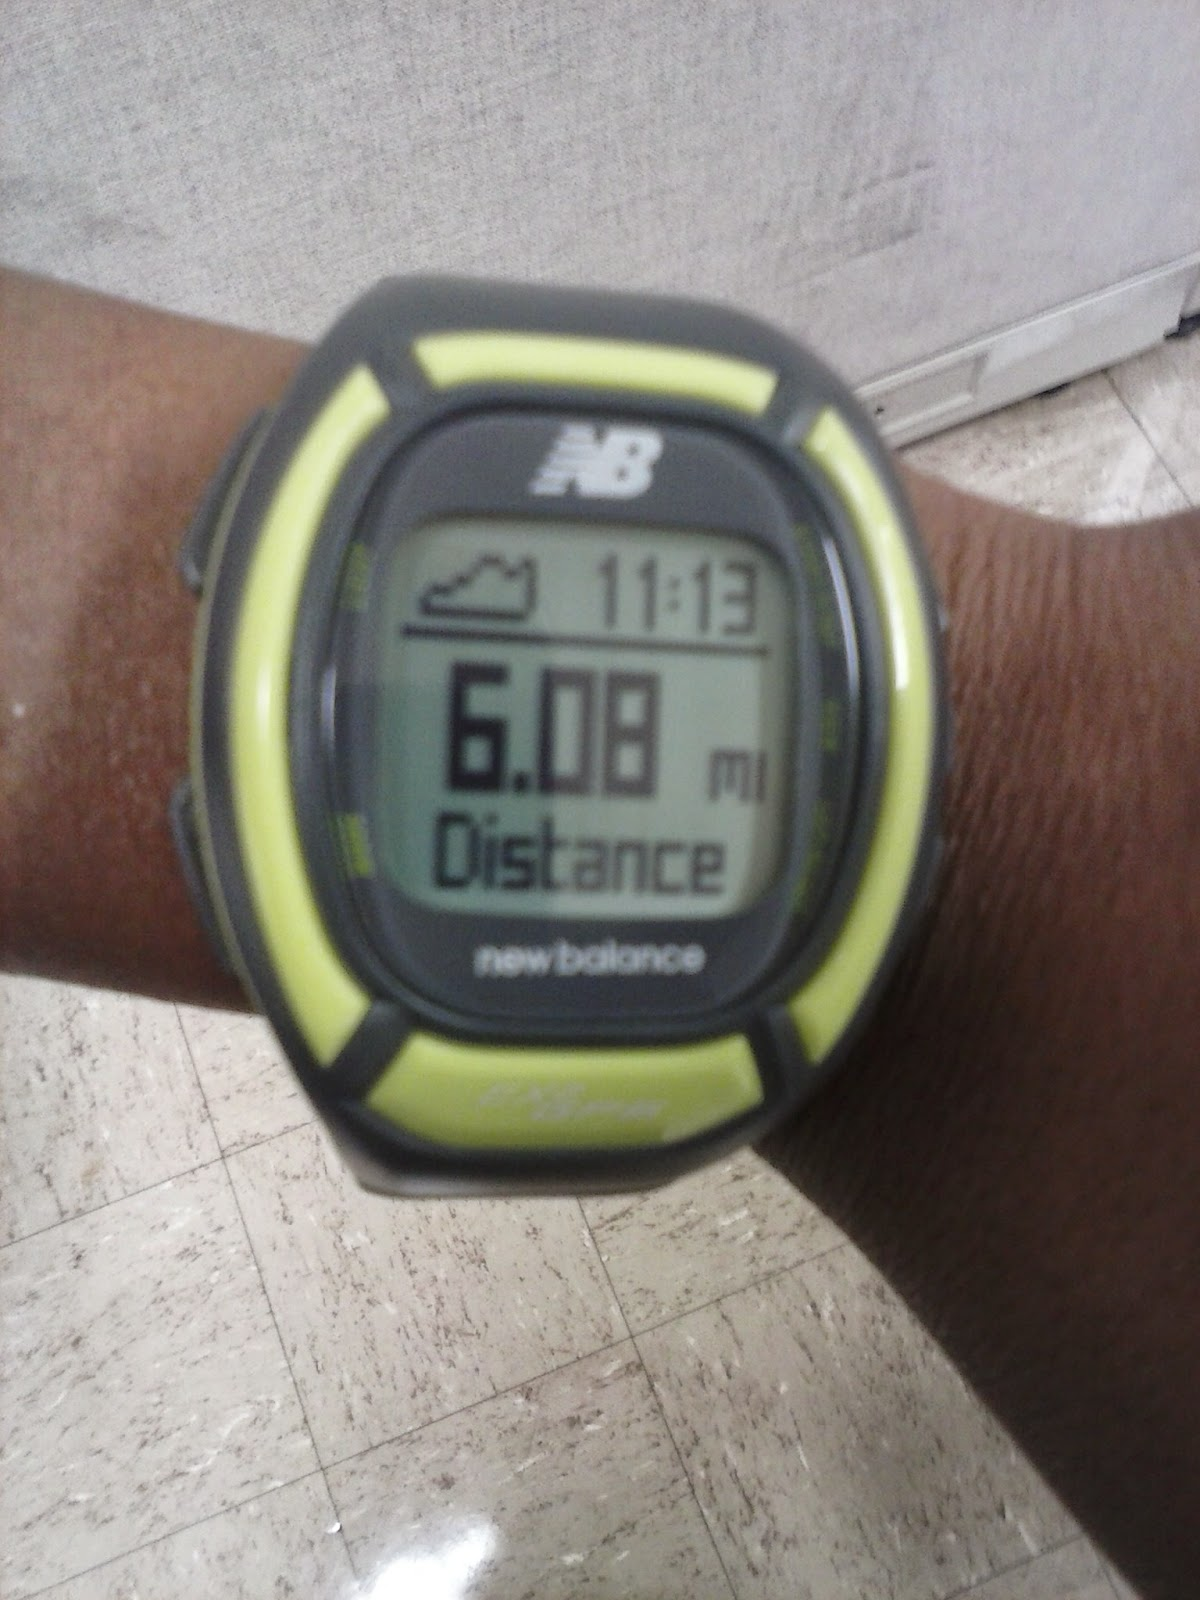 New Balance NX950 GPS Runner Watch